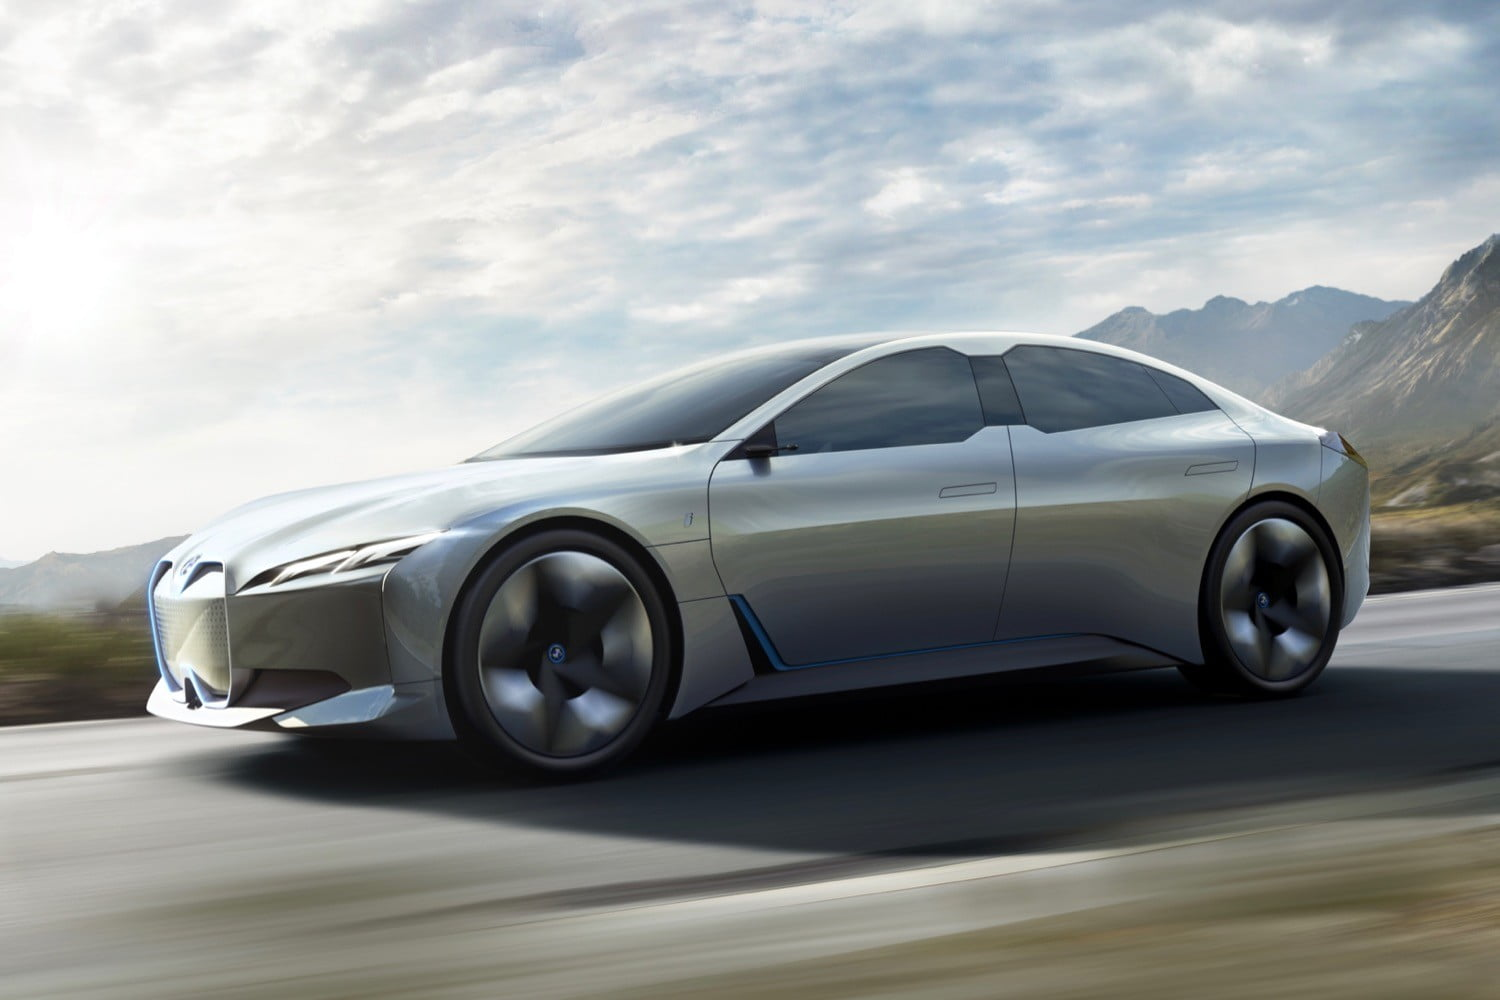 BMW i4 electric car reportedly coming in 2021 with over 300 miles of range